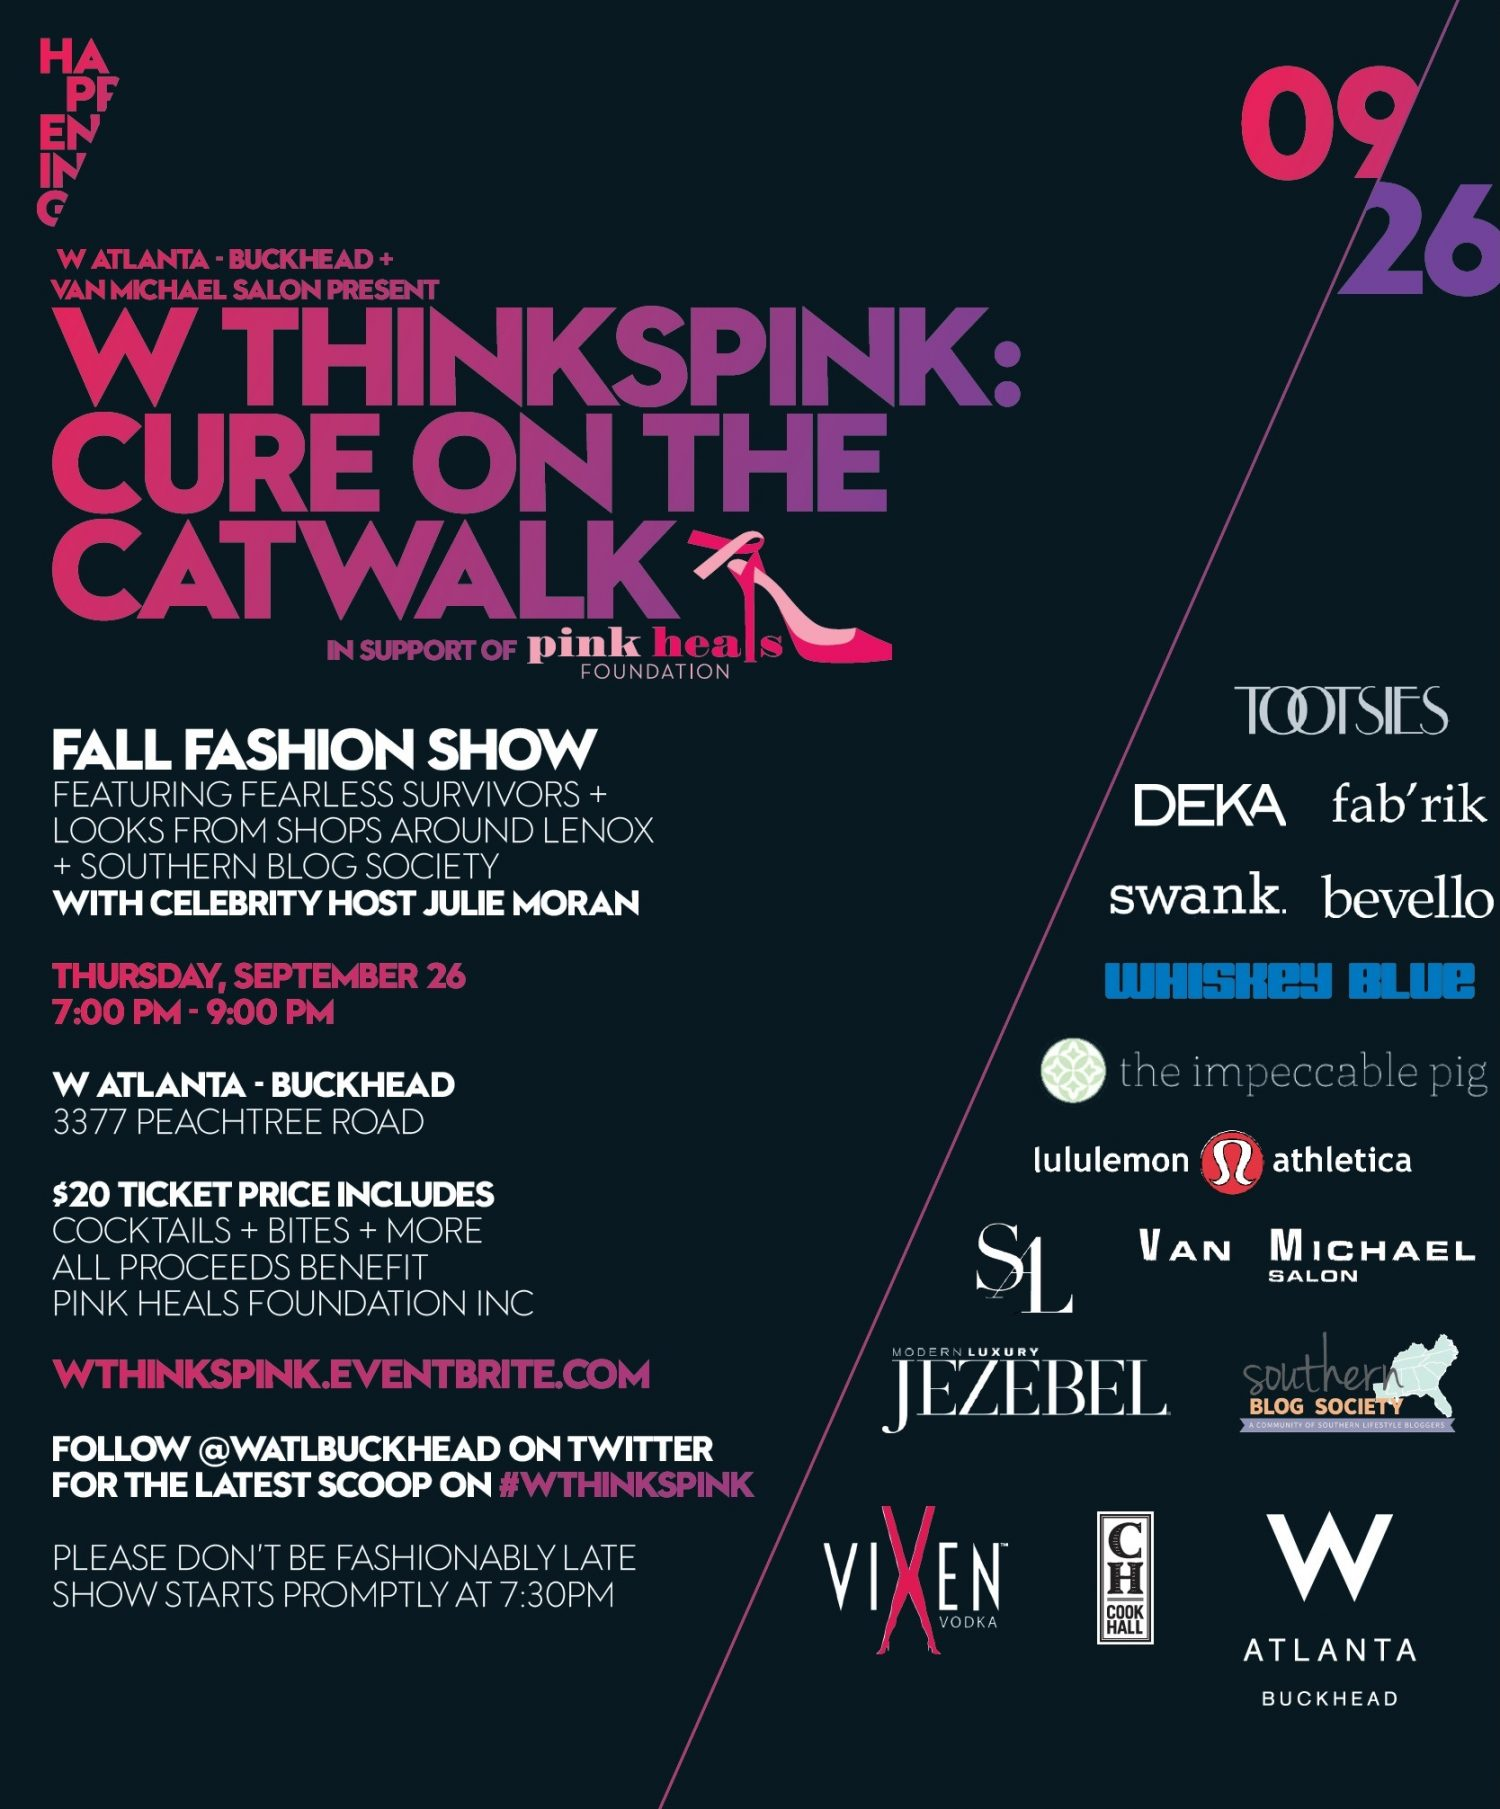 W ThinksPINK - Cure on the Catwalk - Final Invitation